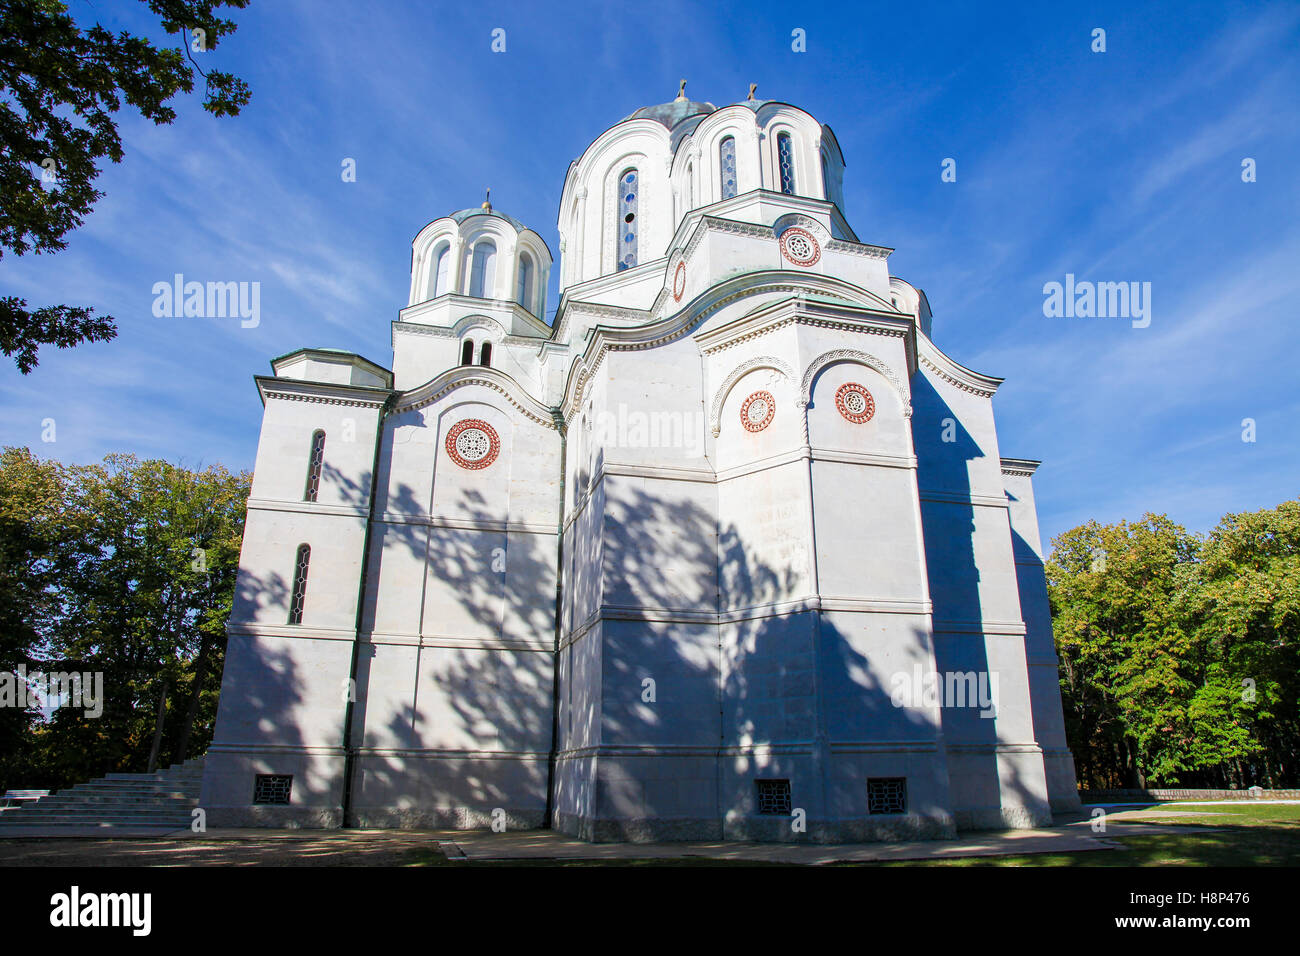 The Church of Saint Sava is a Serbian Orthodox church located on the Vracar plateau in Belgrade. It is one of the - Stock Image